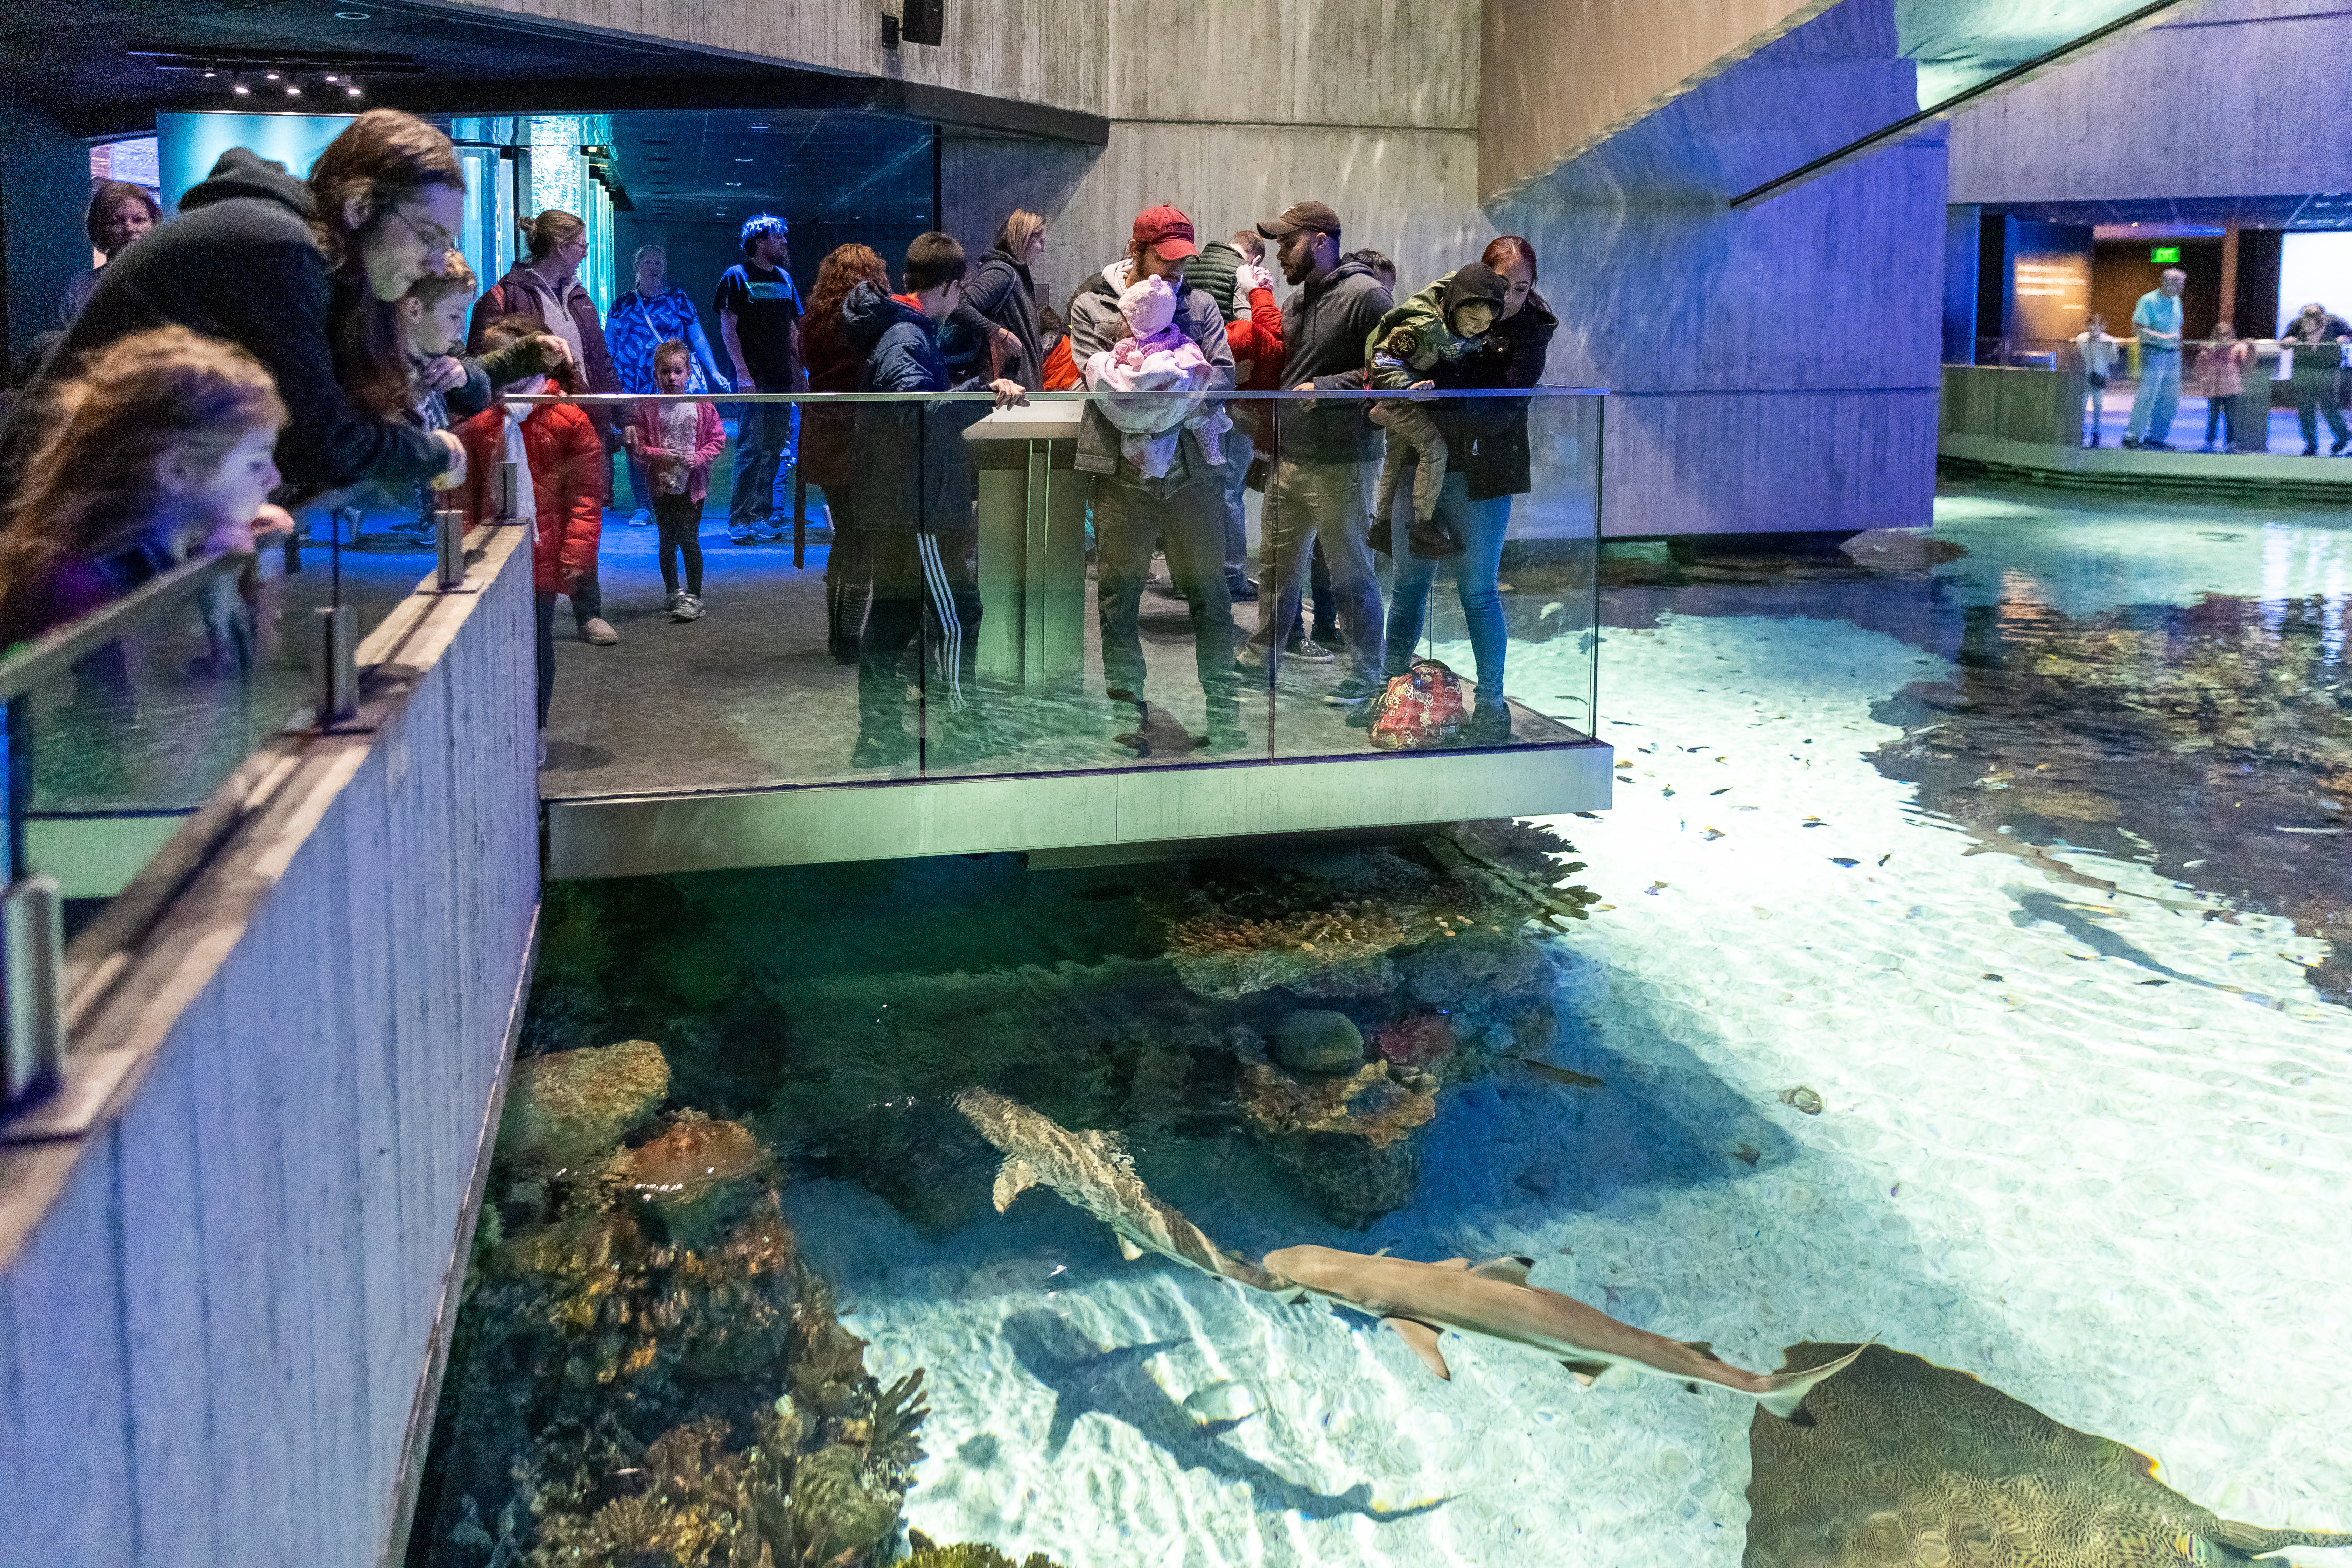 Groups of people looking at sharks in the water at the National Aquarium